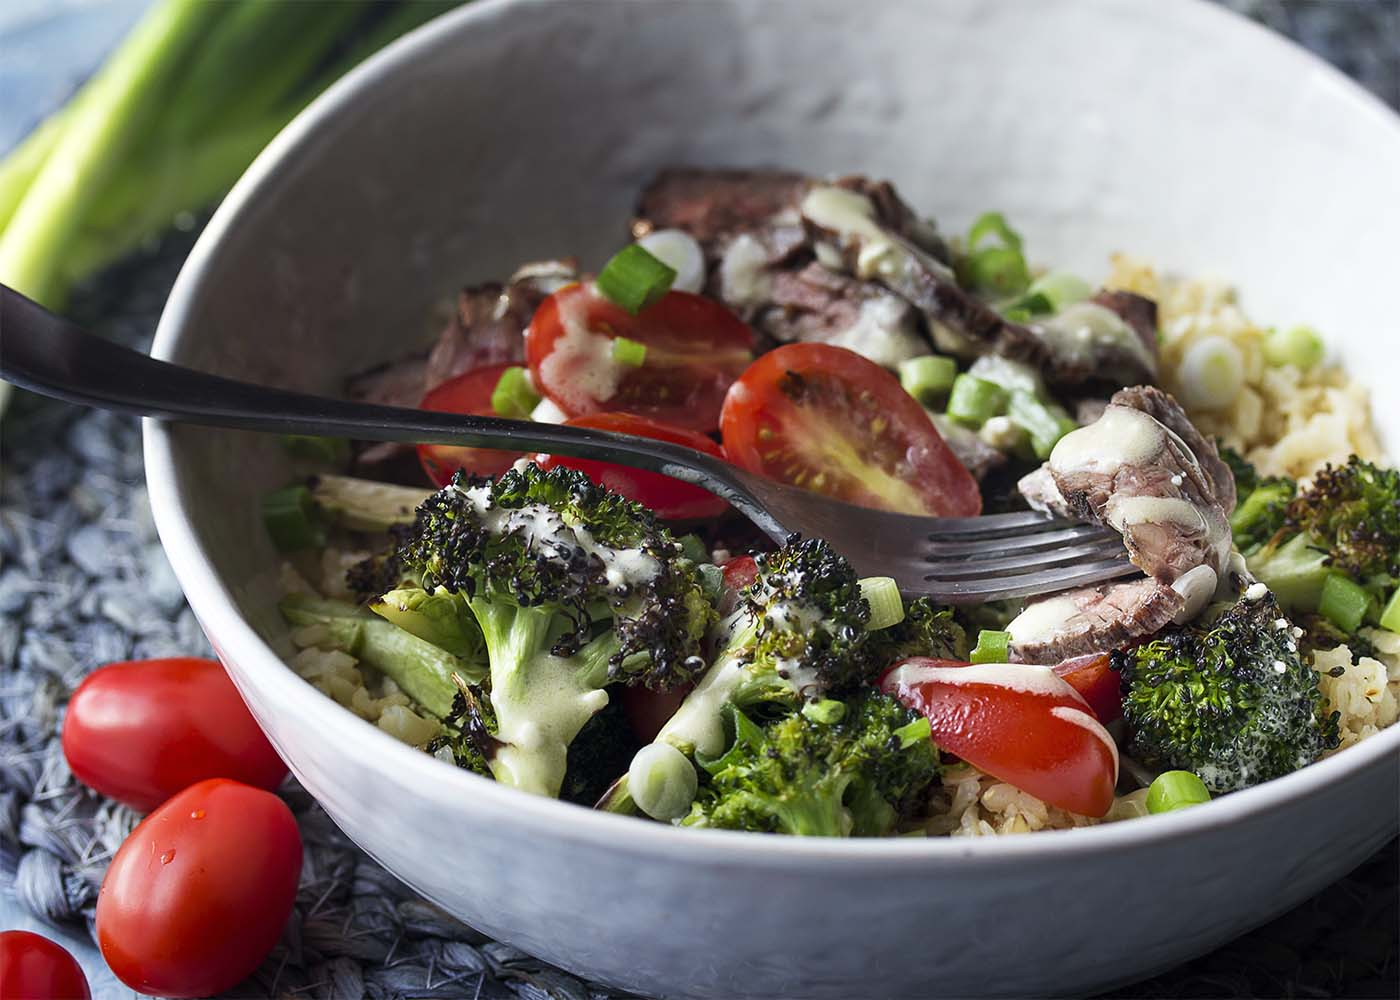 A fork picking up a slice of steak from a bowl of salad all topped by blue cheese dressing.